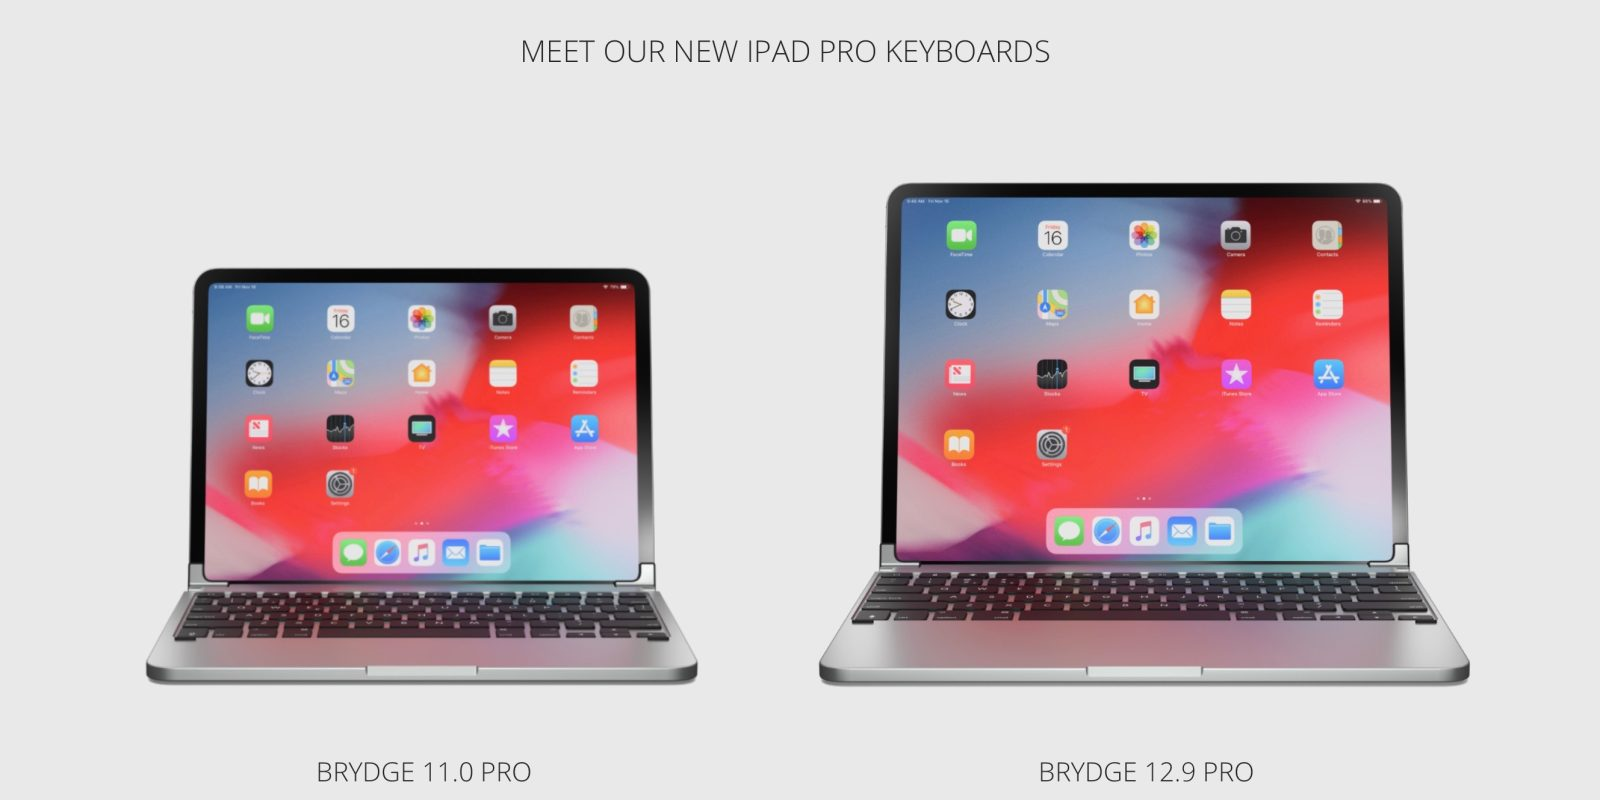 f9a80291649 Brydge s new MacBook-style iPad Pro keyboards now available for pre-order